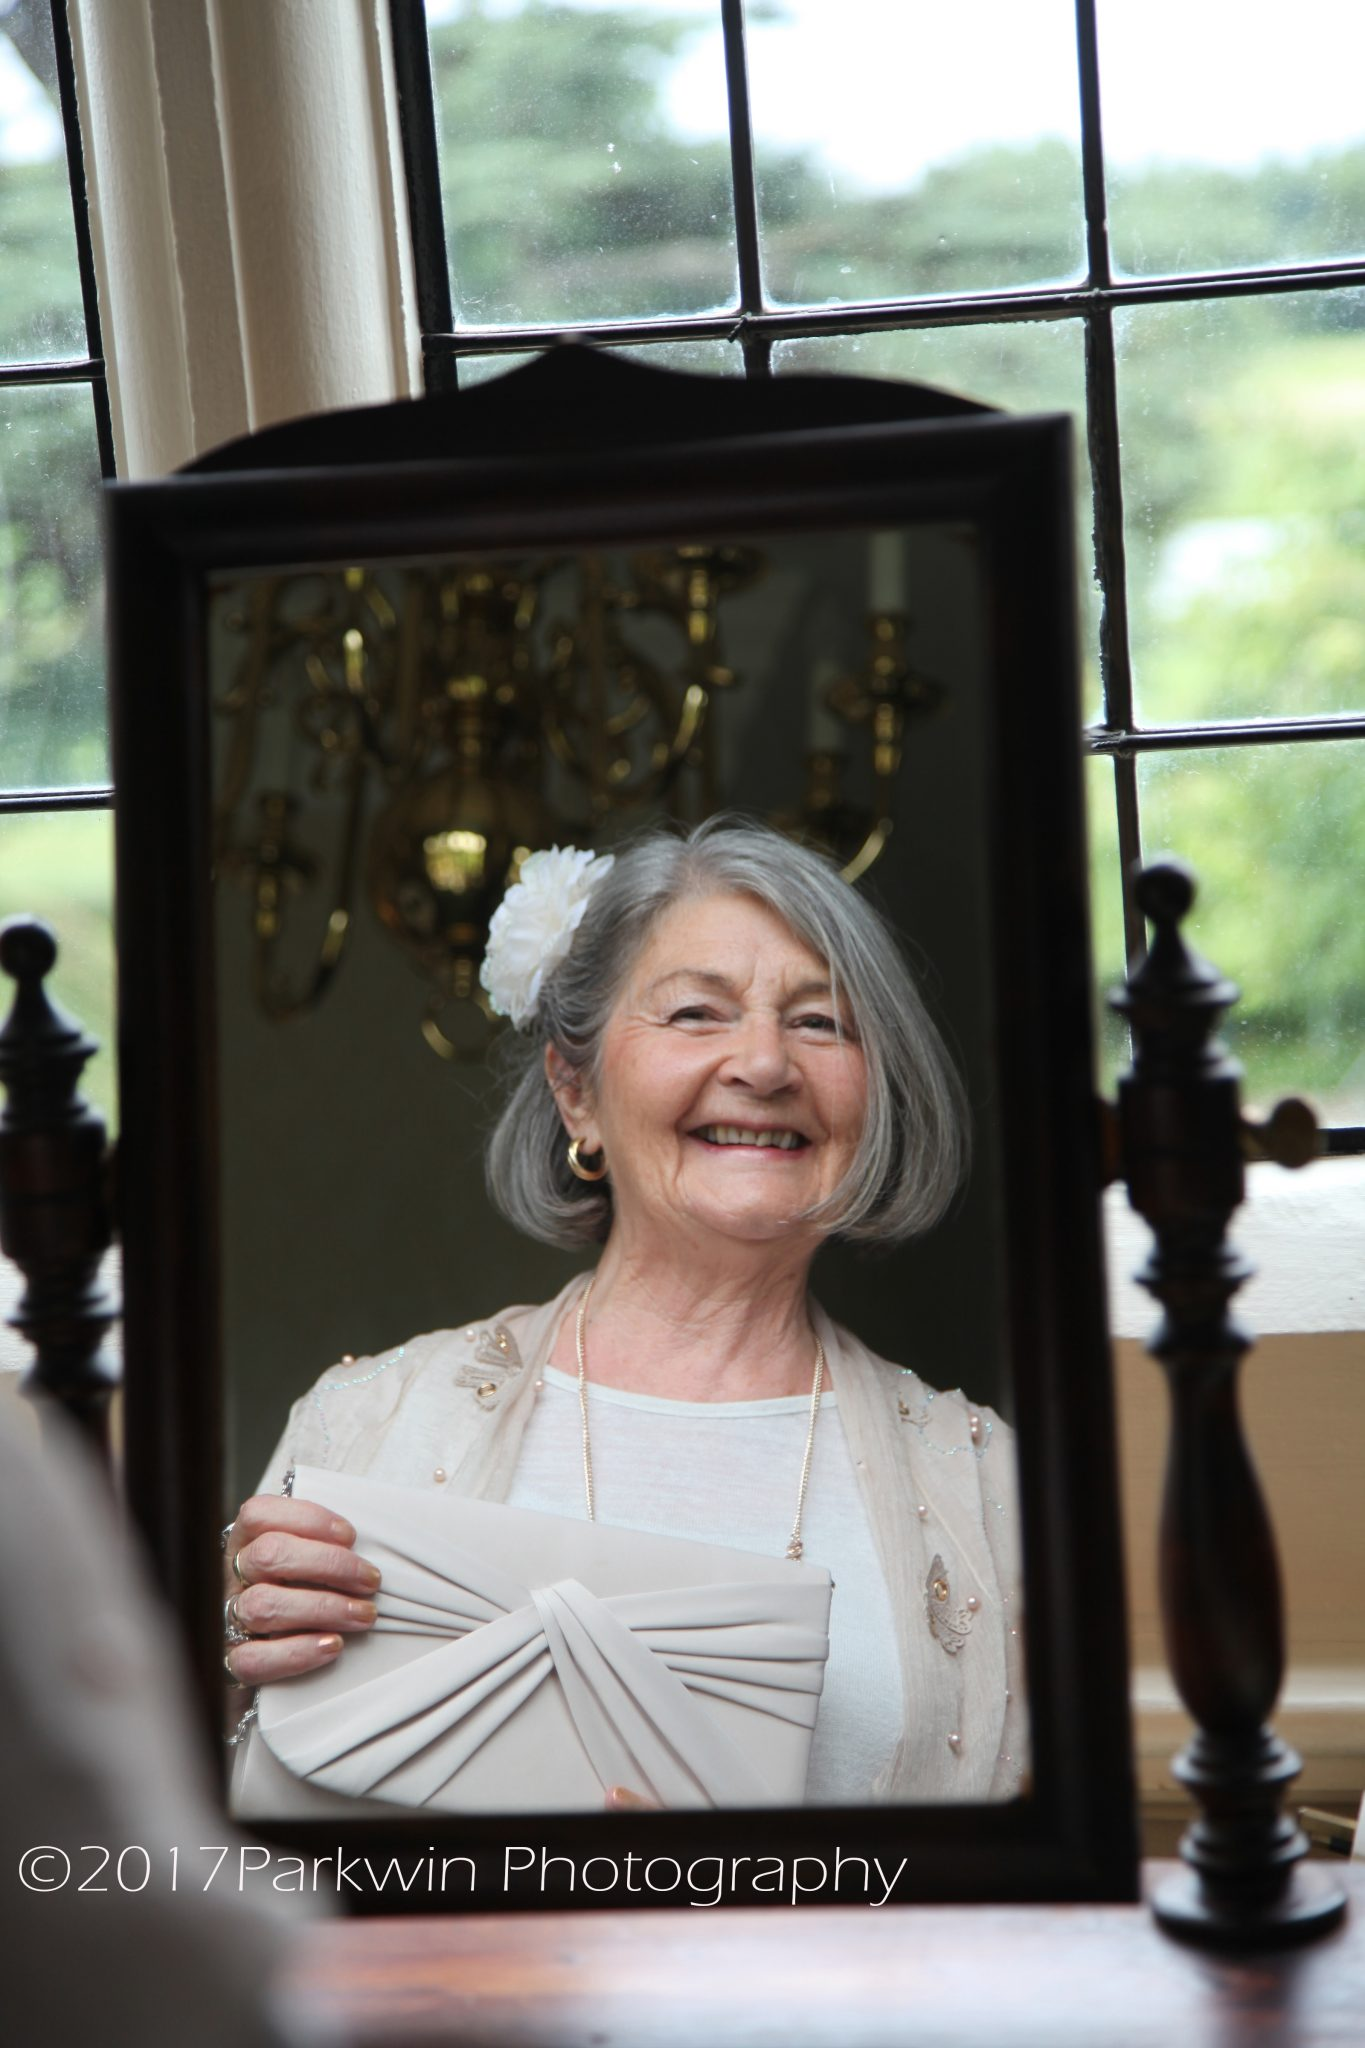 Grandma looking in mirror at Hanbury Manor